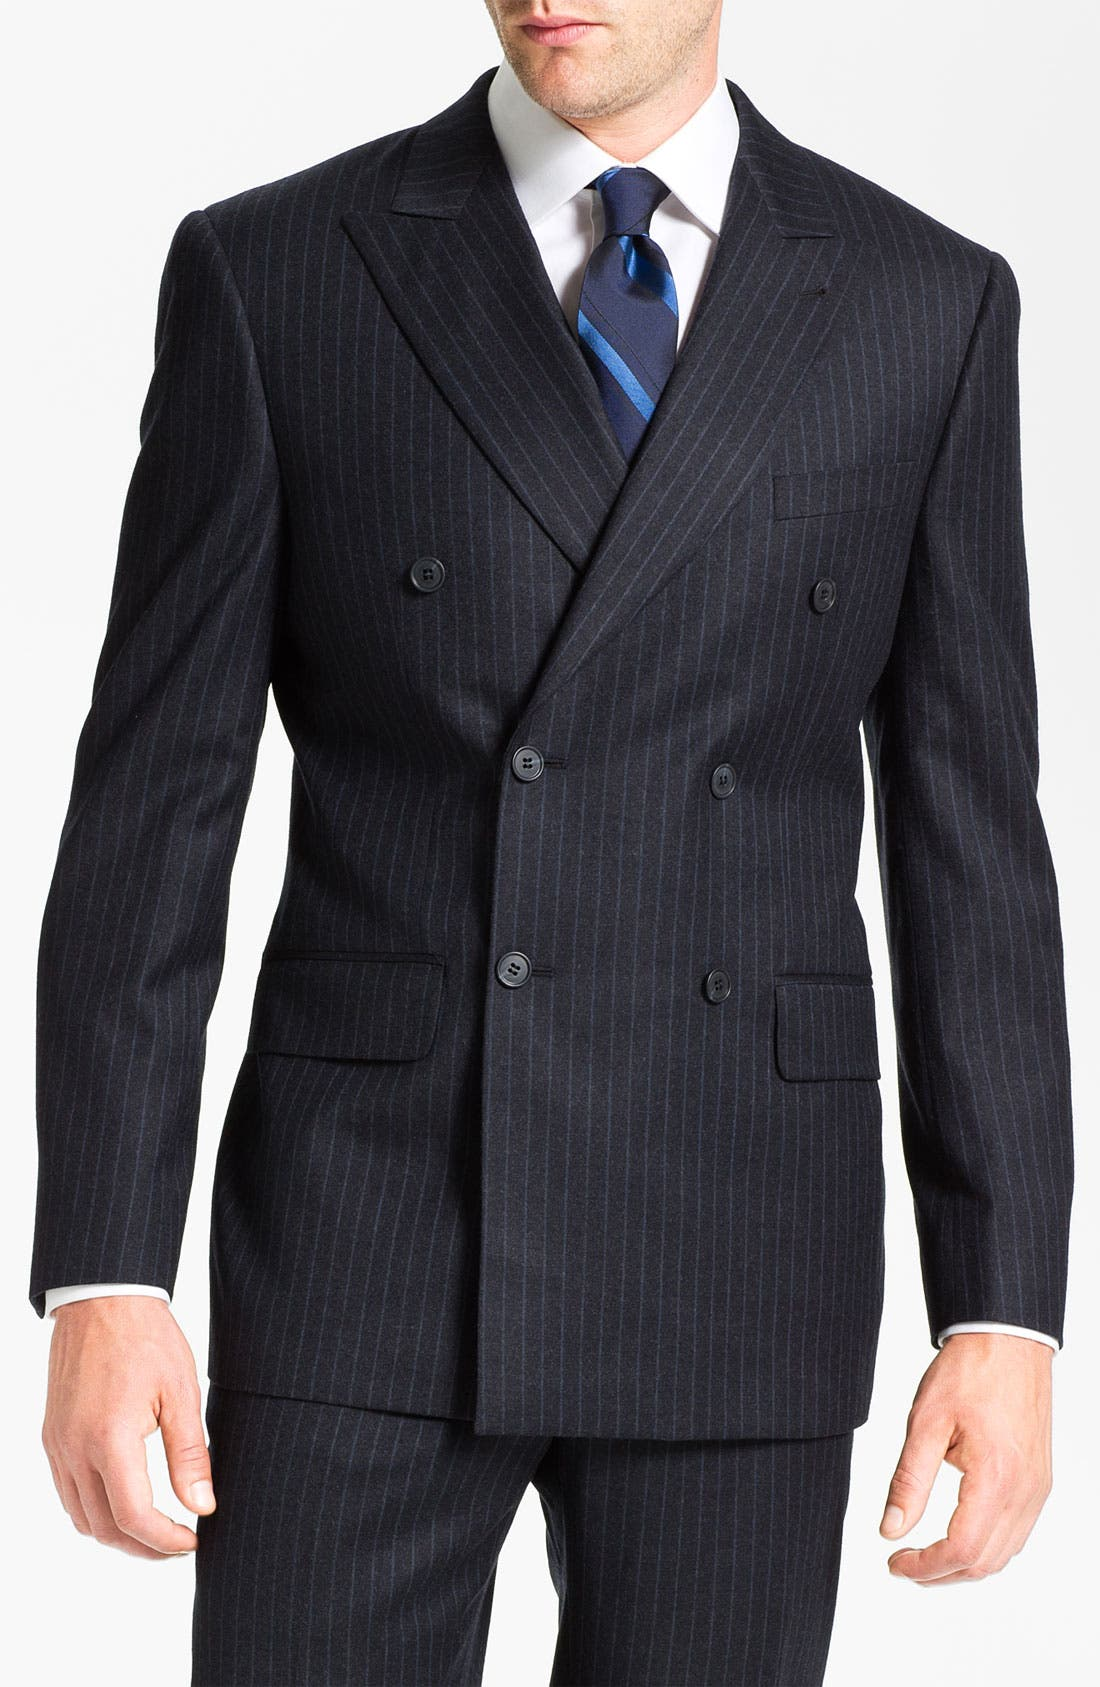 Main Image - Joseph Abboud Double Breasted Pinstripe Suit